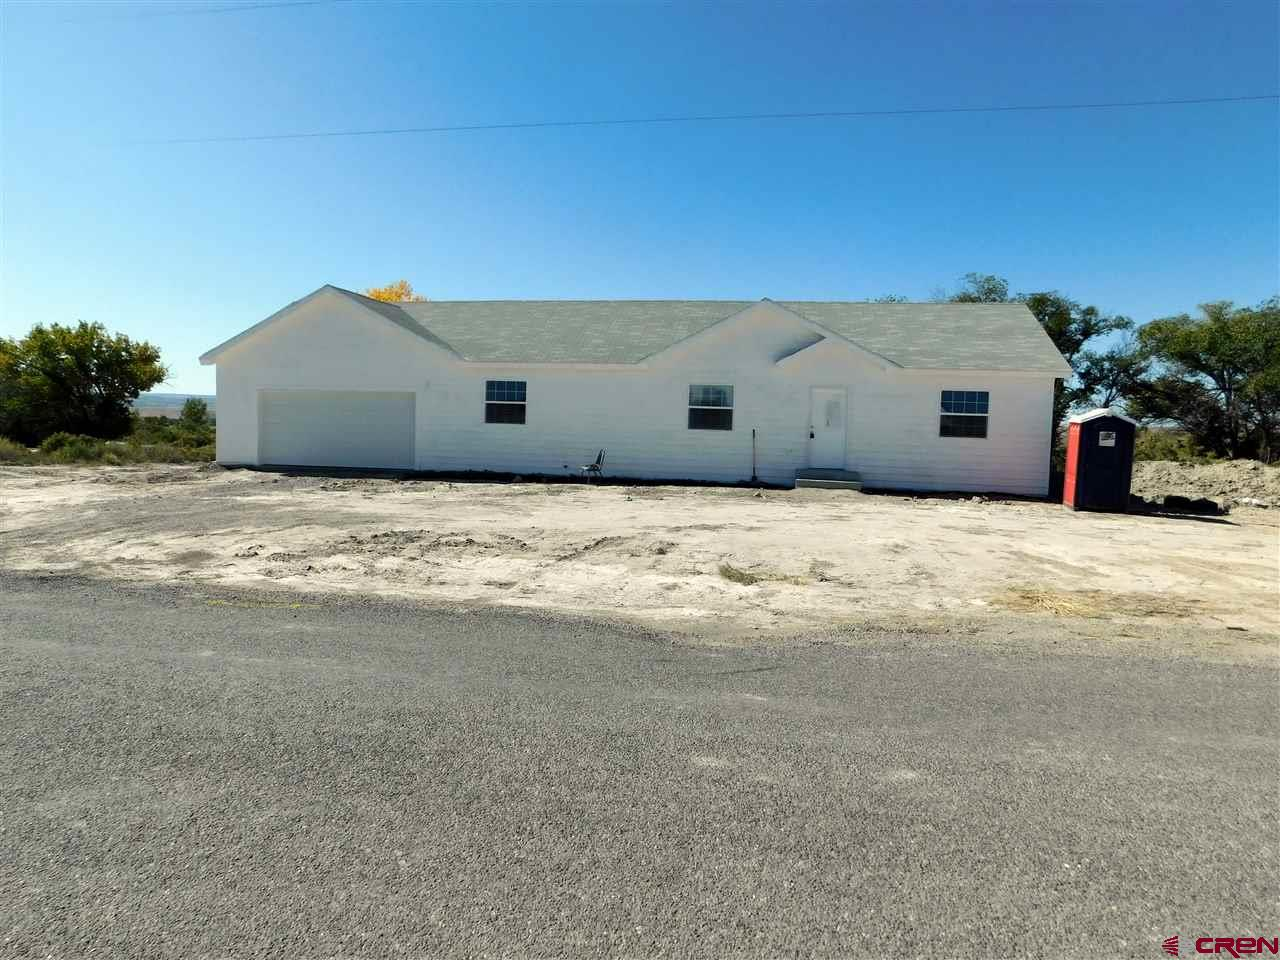 New house being built on 2.36 acres. Open floor plan with three bedrooms, two baths and two car attached garage. No covenants. Easy access to Hwy. 50.  Estimated completion date is 30 days. More details to be provided upon further completion of the house.